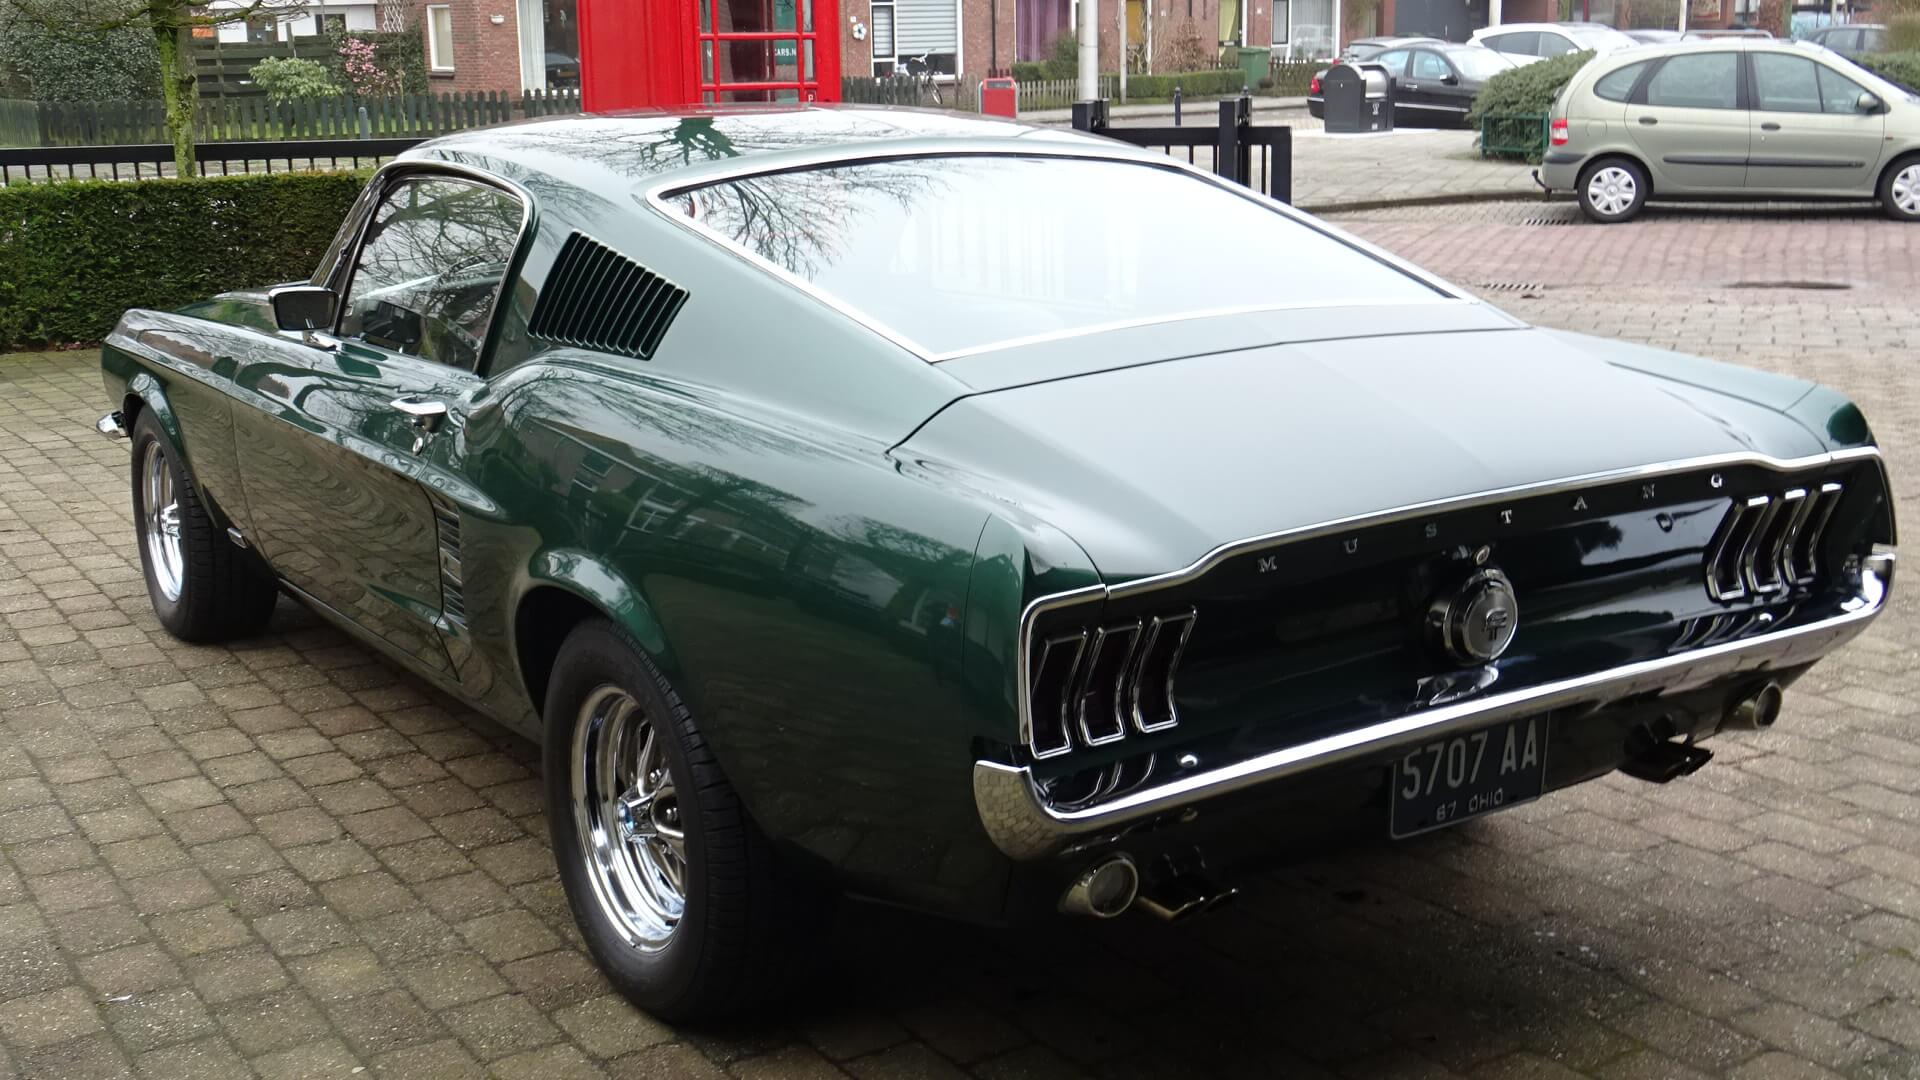 67 Ford Mustang 390 Fastback Gta Union Jack Vintage Cars